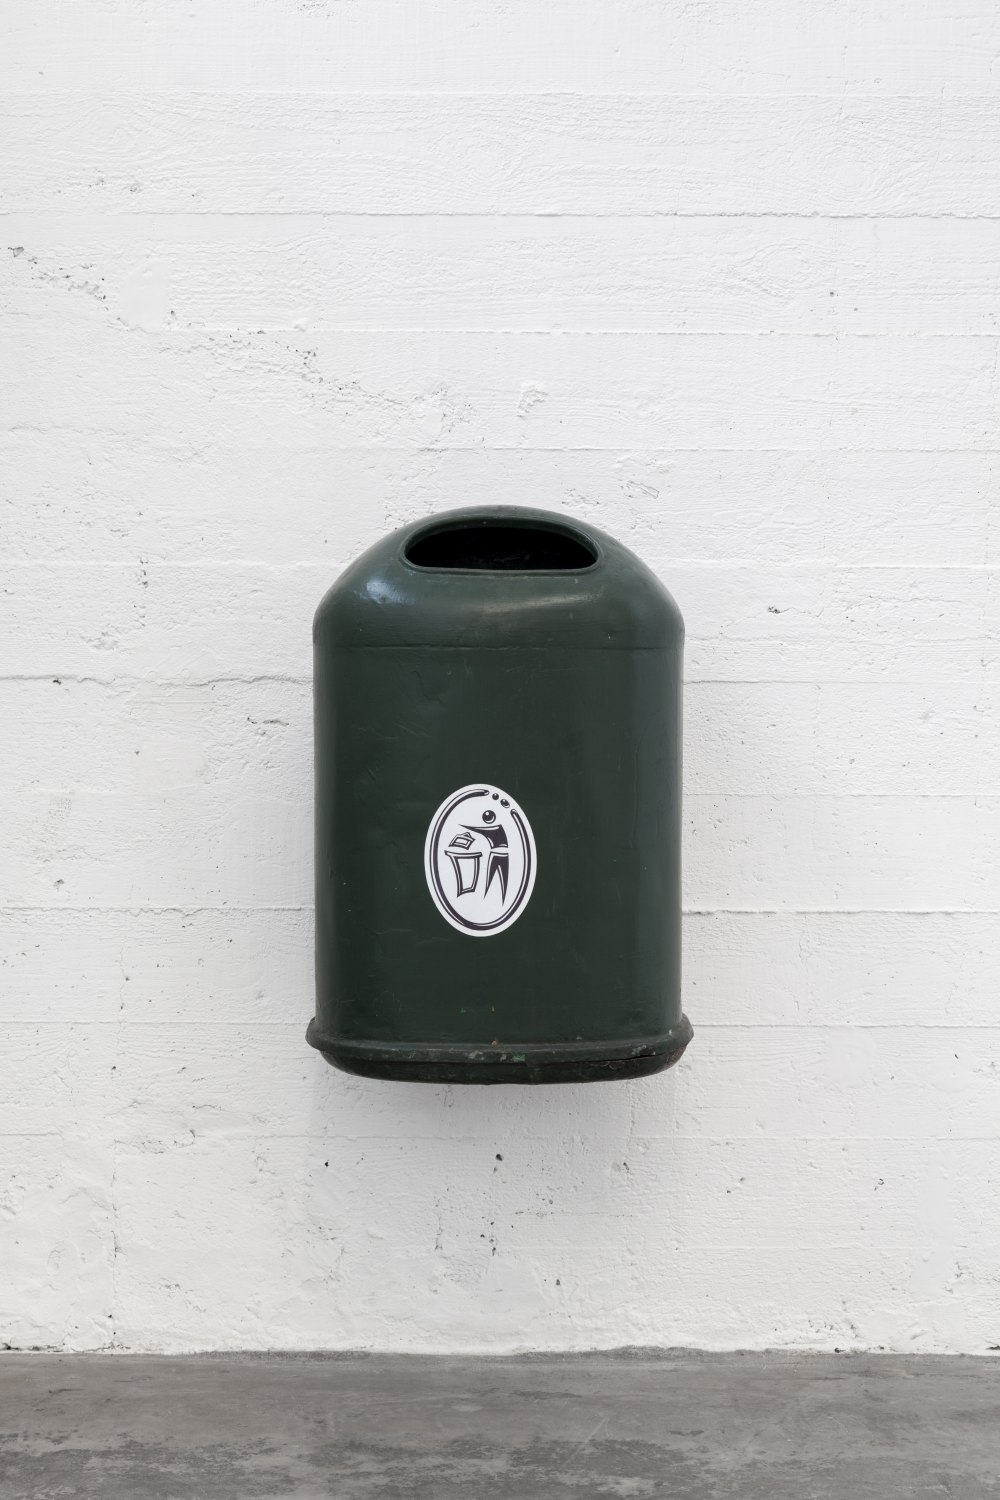 Klara Lidén Untitled (Trashcan), 2015 Mixed media, dimensions variable